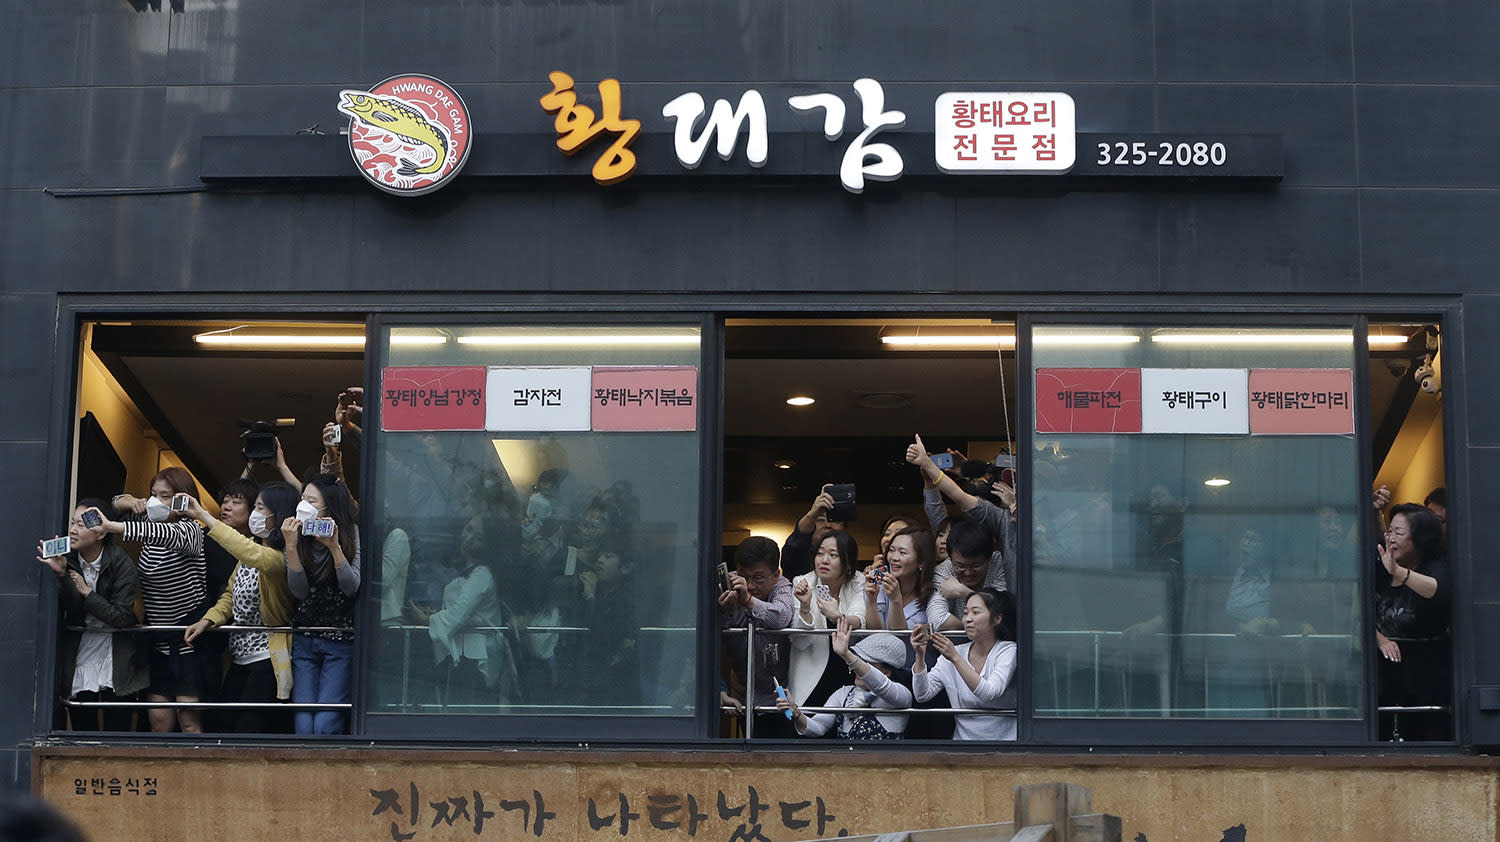 <p>Supporters at a restaurant watch South Korea's presidential candidate Moon Jae-in from the Democratic Party, during his campaign rally, in Seoul, South Korea, May 6, 2017. (Photo: Ahn Young-joon/AP) </p>